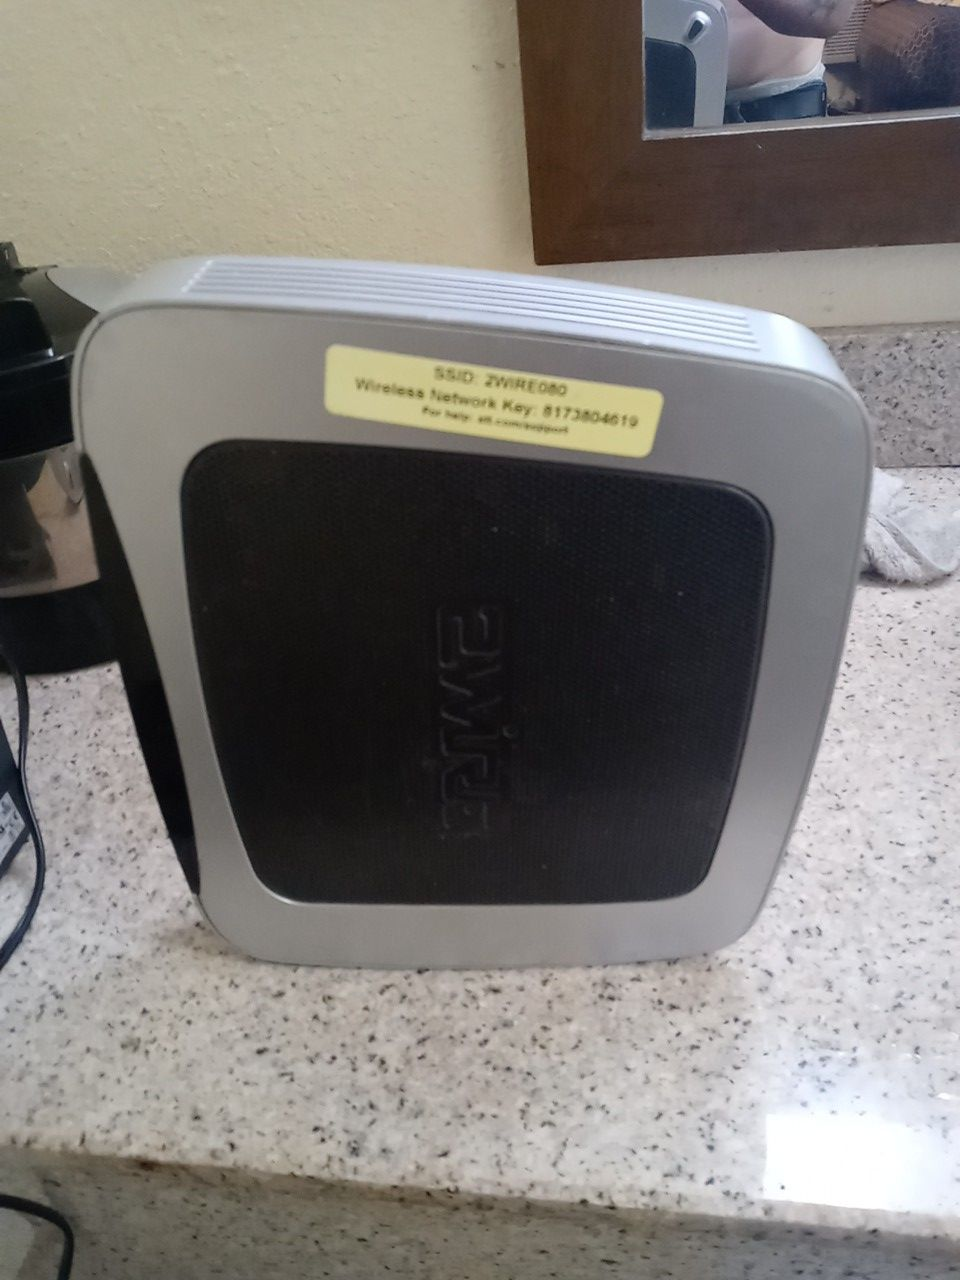 AT&T 2Wire 3800HGV-B Gateway DSL Modem Home WiFi Router